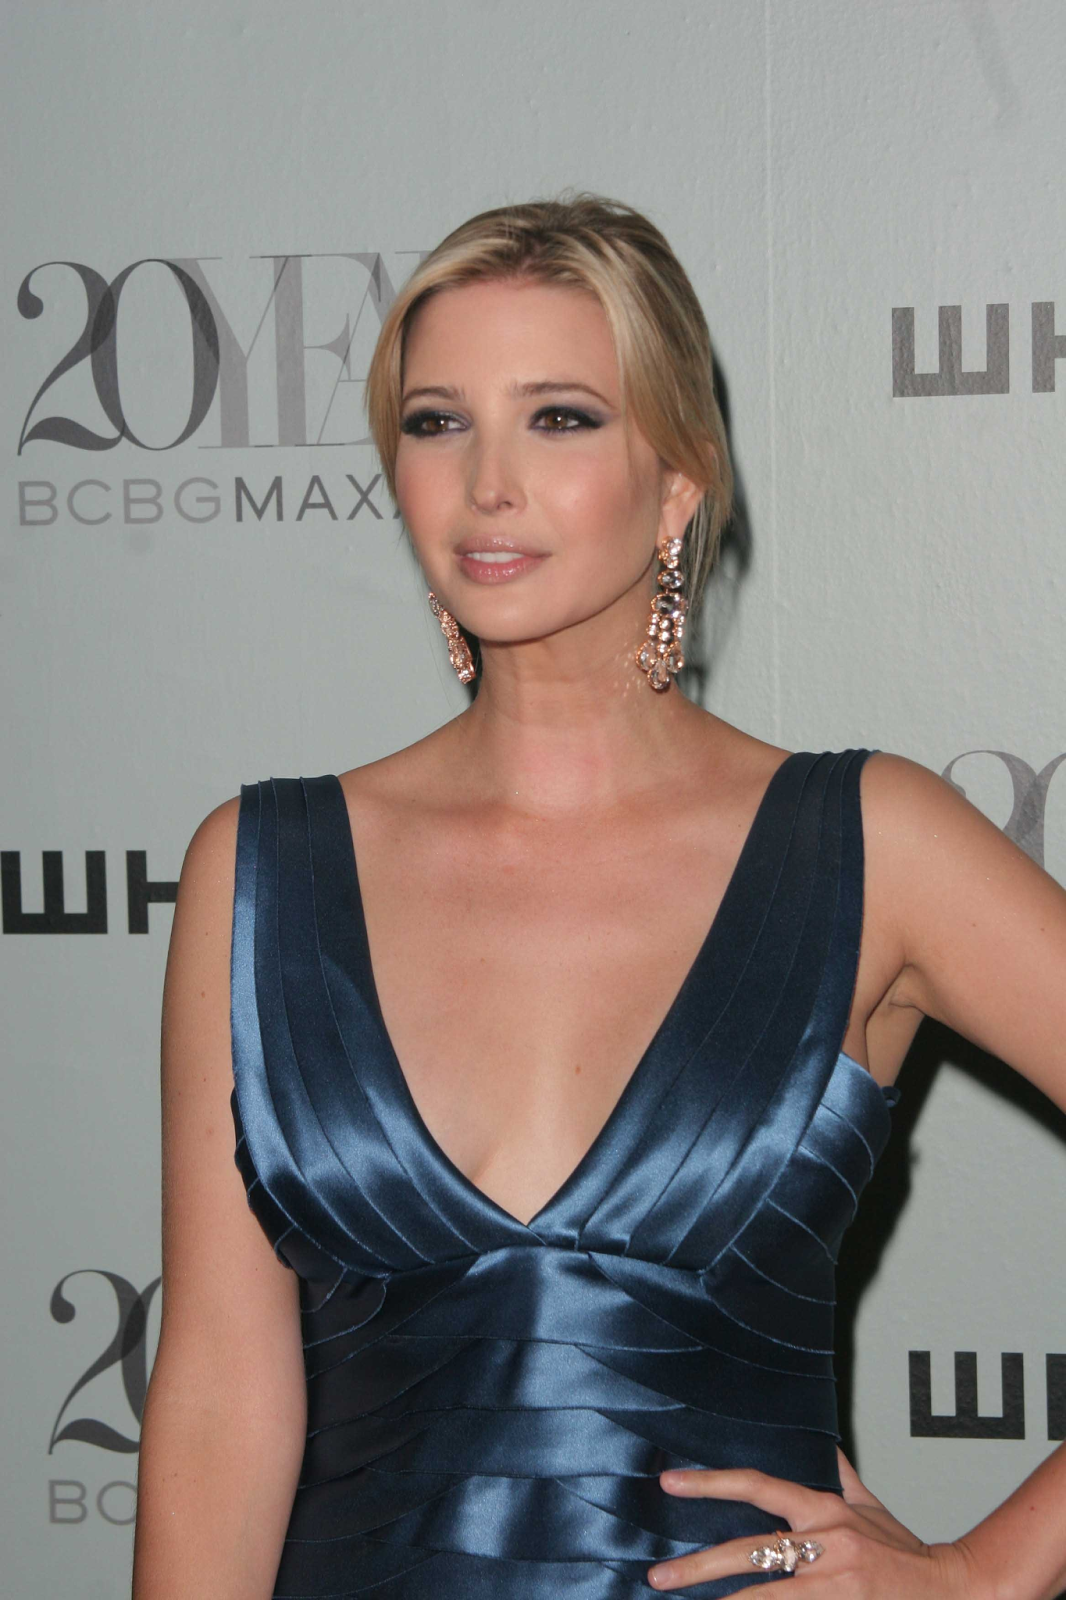 ivanka trump pictures